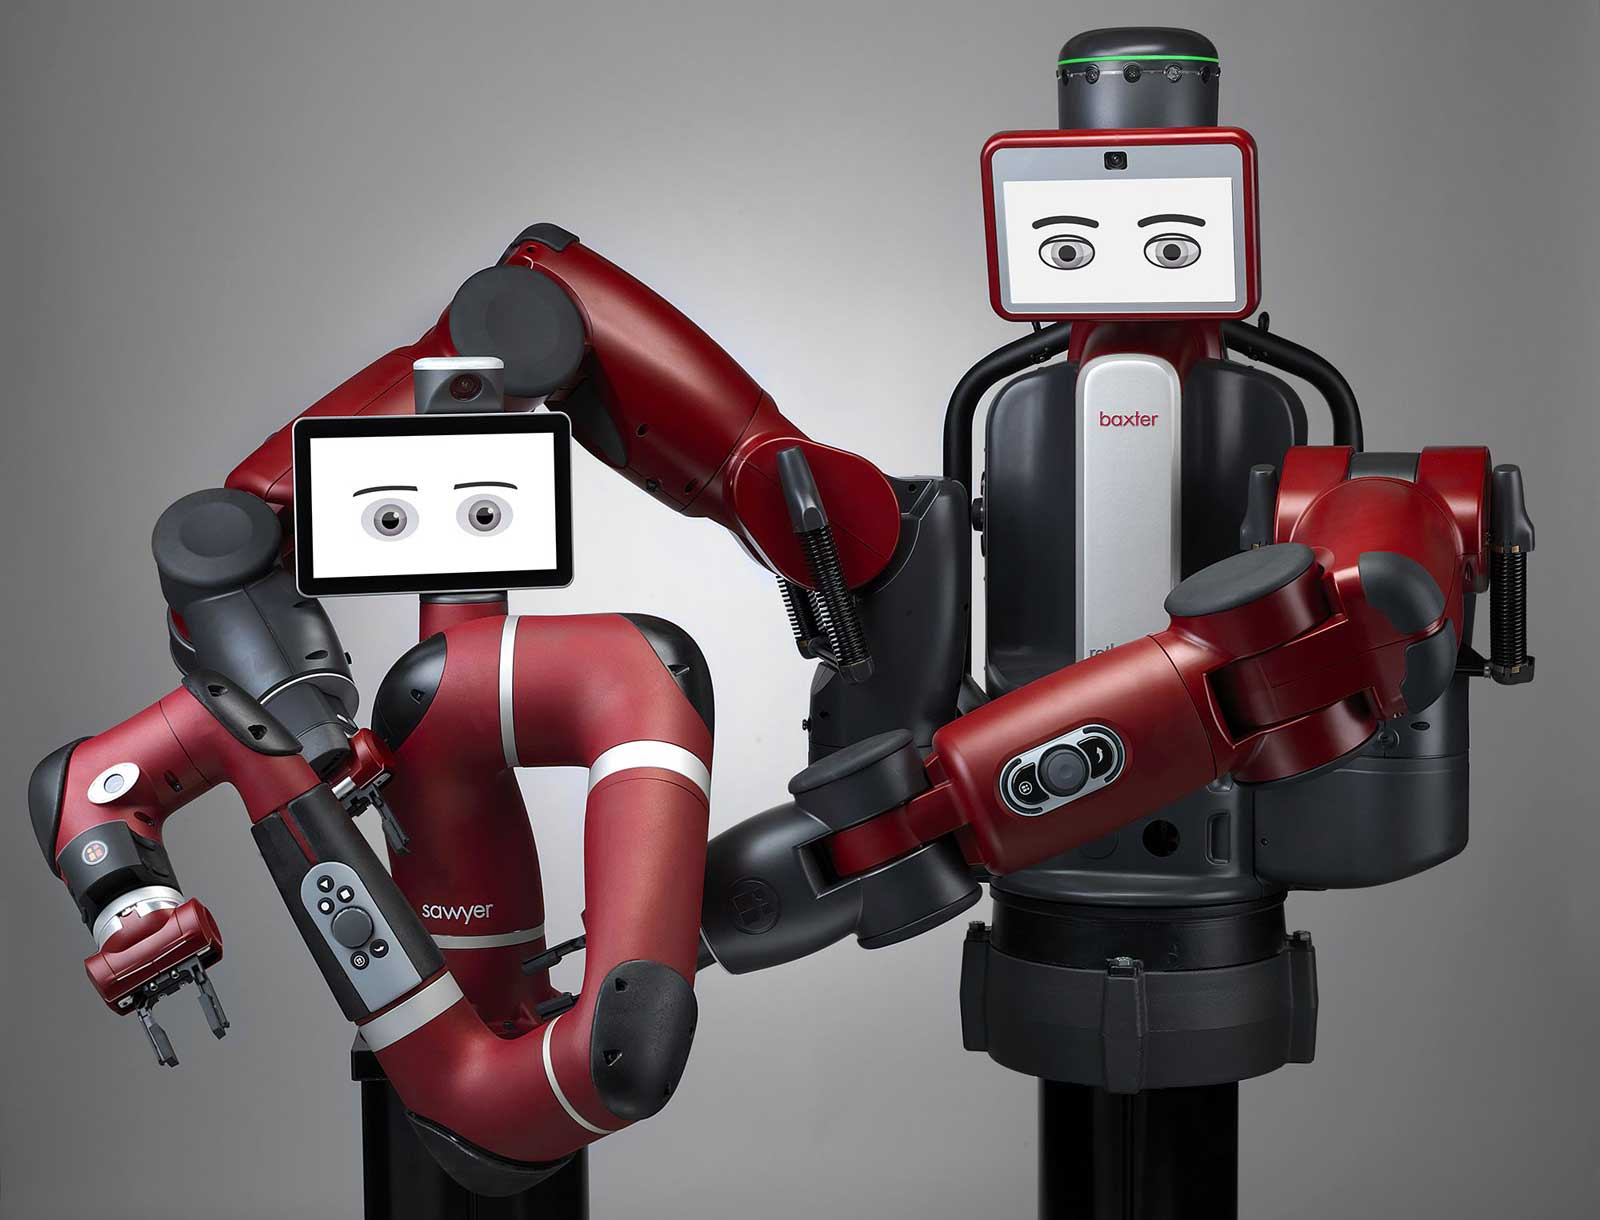 (Bild: Rethink Robotics, Inc.)